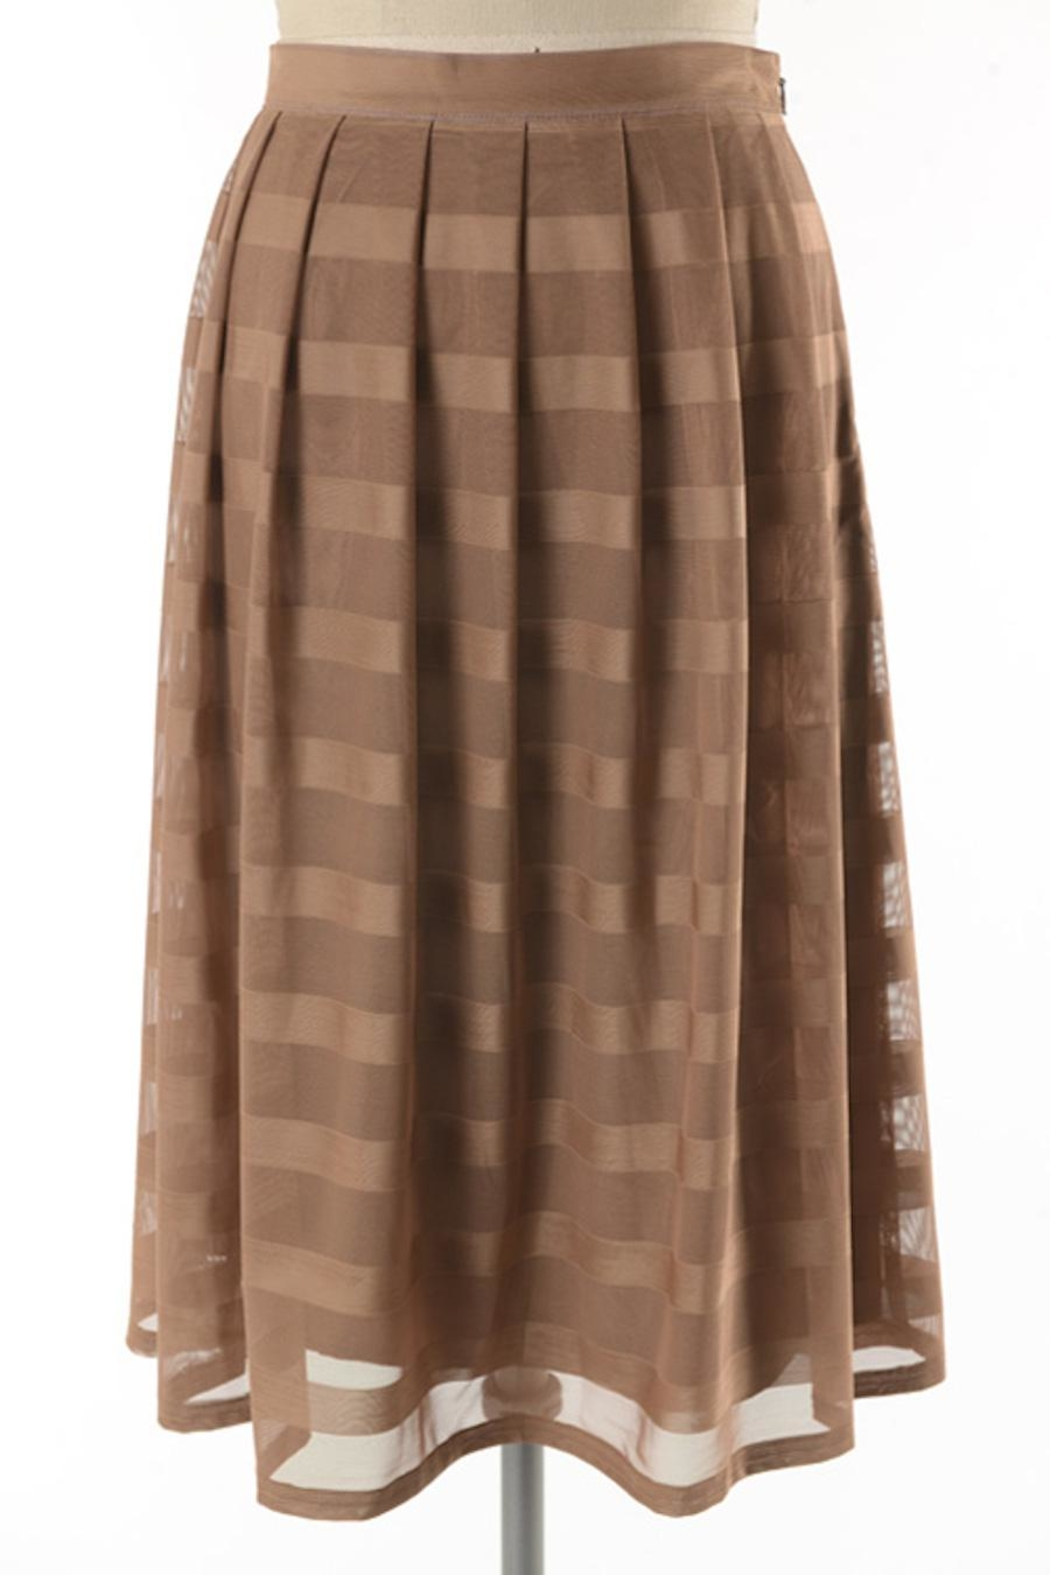 Comme Toi Mocha Coffe Skirt - Front Full Image